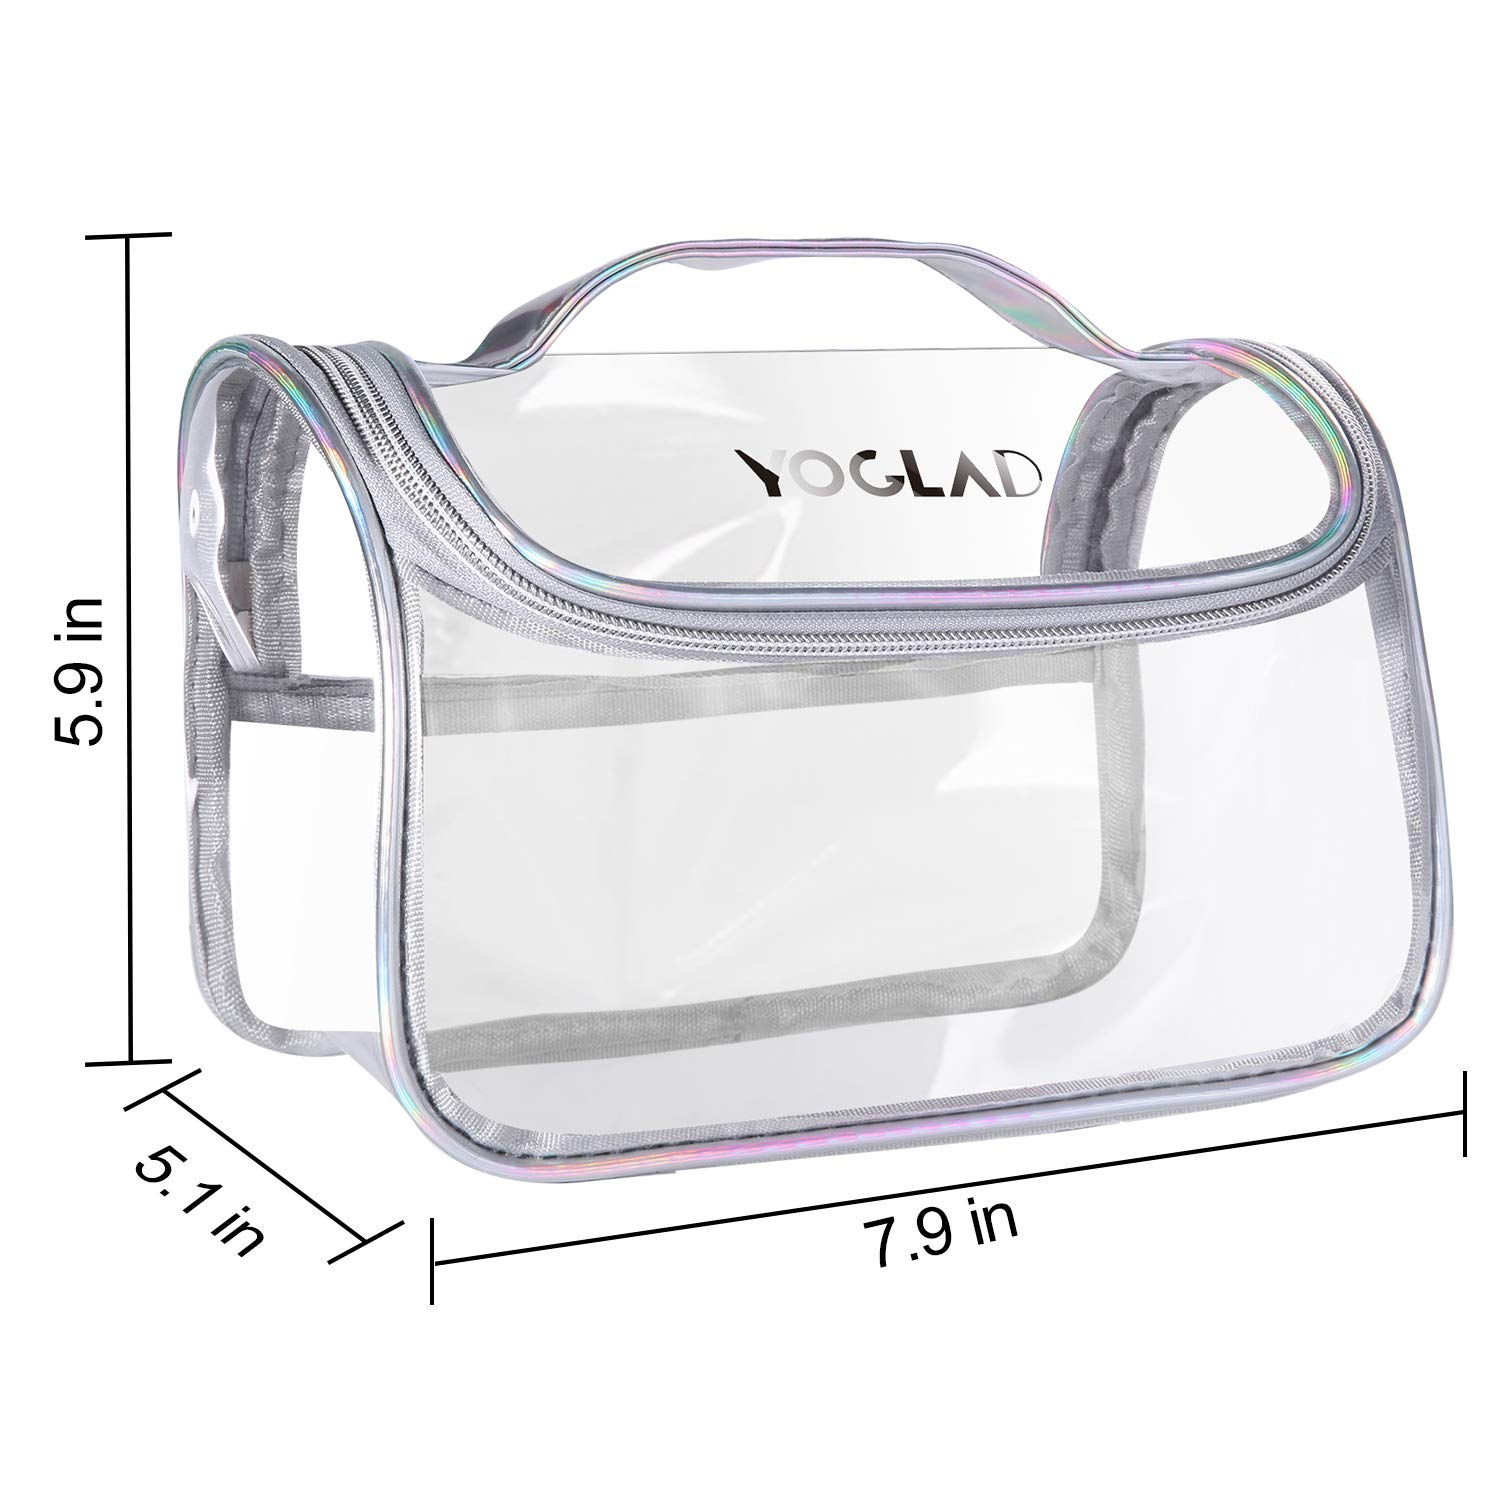 Yoglad Clear Travel TSA approved Toiletry Bag Waterproof Cosmetic Bag with Zipper Clear Makeup Bag for Women Men, Extra Large Capacity Pouch for Carry-on Luggage, Travel Essentials White